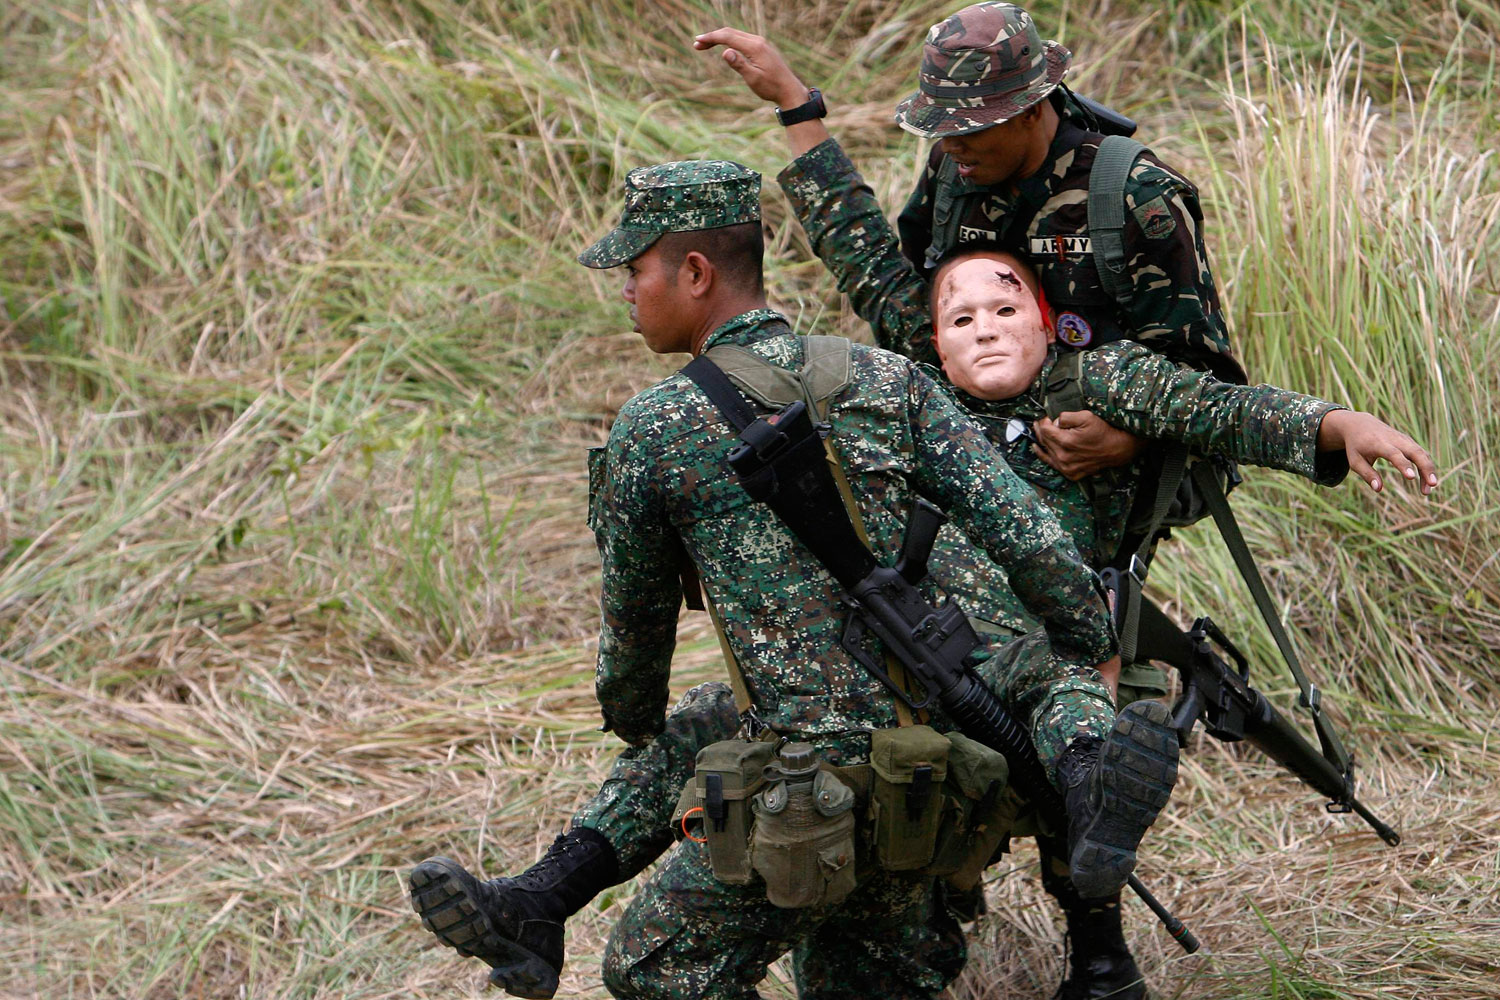 April 9, 2011. A soldier is carried by his comrades after being  wounded  in a convoy attack during a mock exercise as part of the U.S.-Philippines joint military exercises in Camp Magsaysay, Nueva Ecija, north of Manila. The United States has halved the number of soldiers taking part in war games in the Philippines this week due to emergency work in the disaster-hit areas of northeast Japan, officials said.